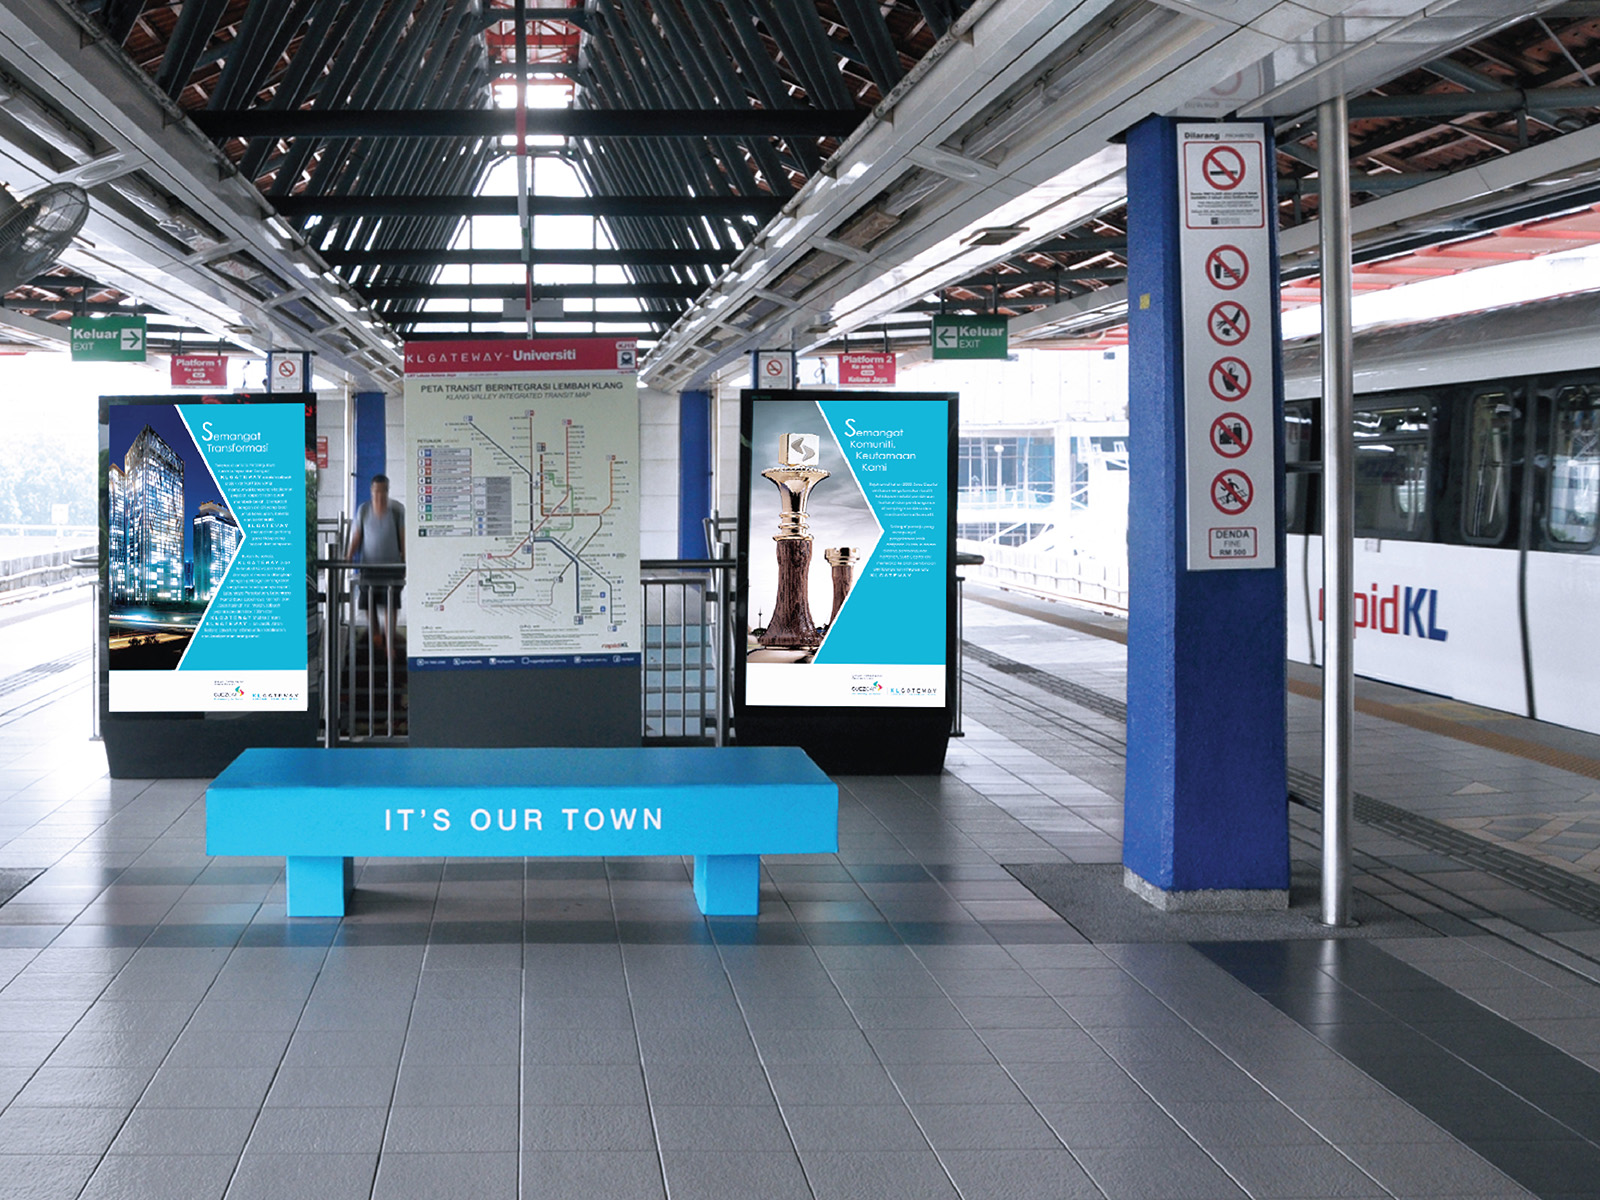 KL Gateway by Suezcap train station brand advertisement takeover with brand ads digital ad boards and bench wrap